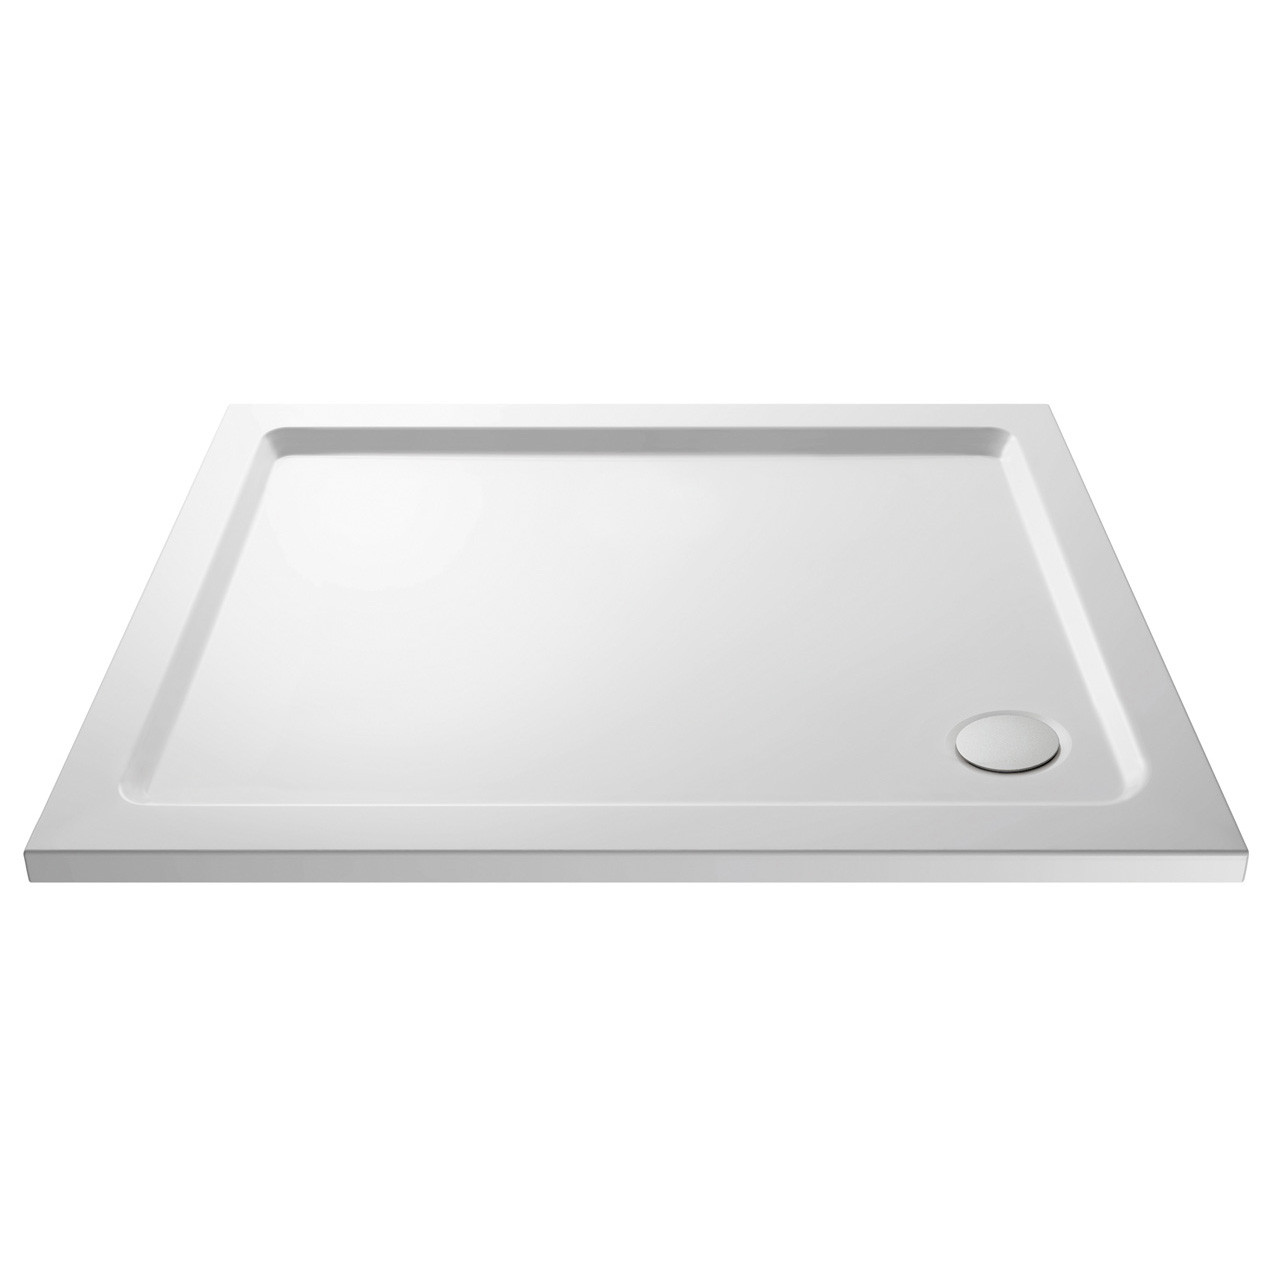 Premiere Pearlstone 900mm x 800mm x 40mm Rectangular Shower Tray with Corner Waste - NTP009